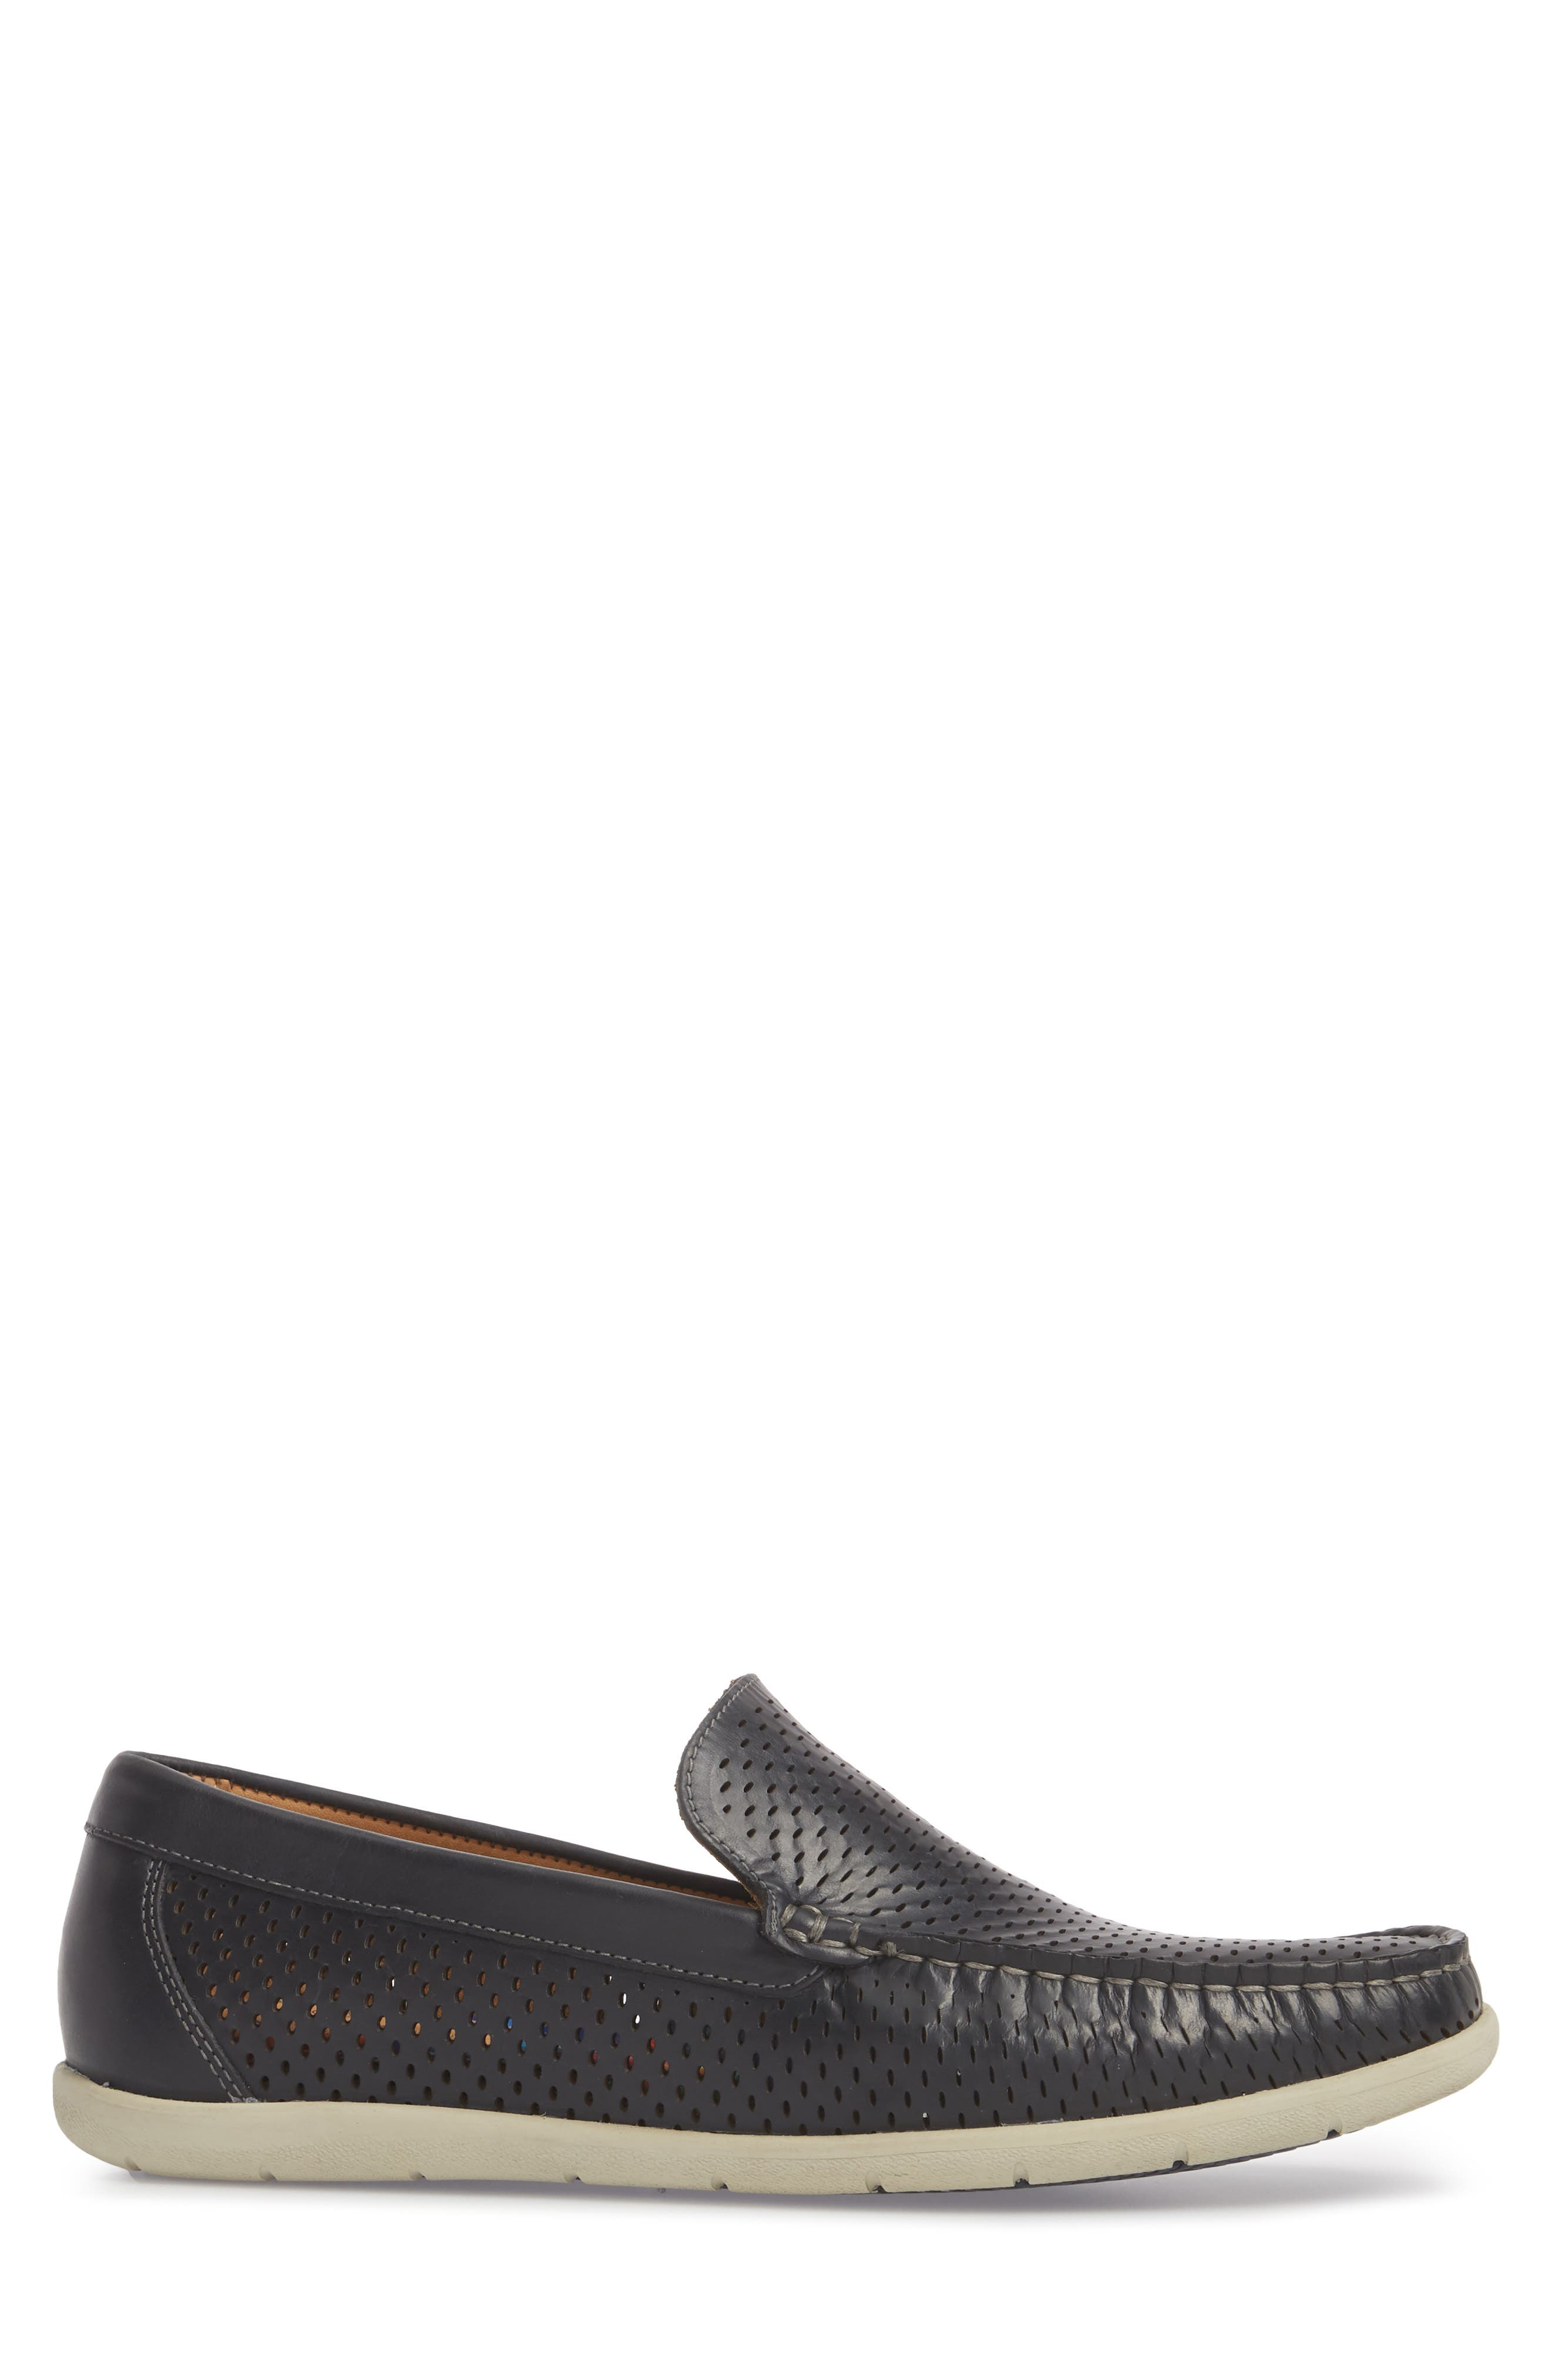 Manhattan Loafer,                             Alternate thumbnail 3, color,                             NAVY LEATHER